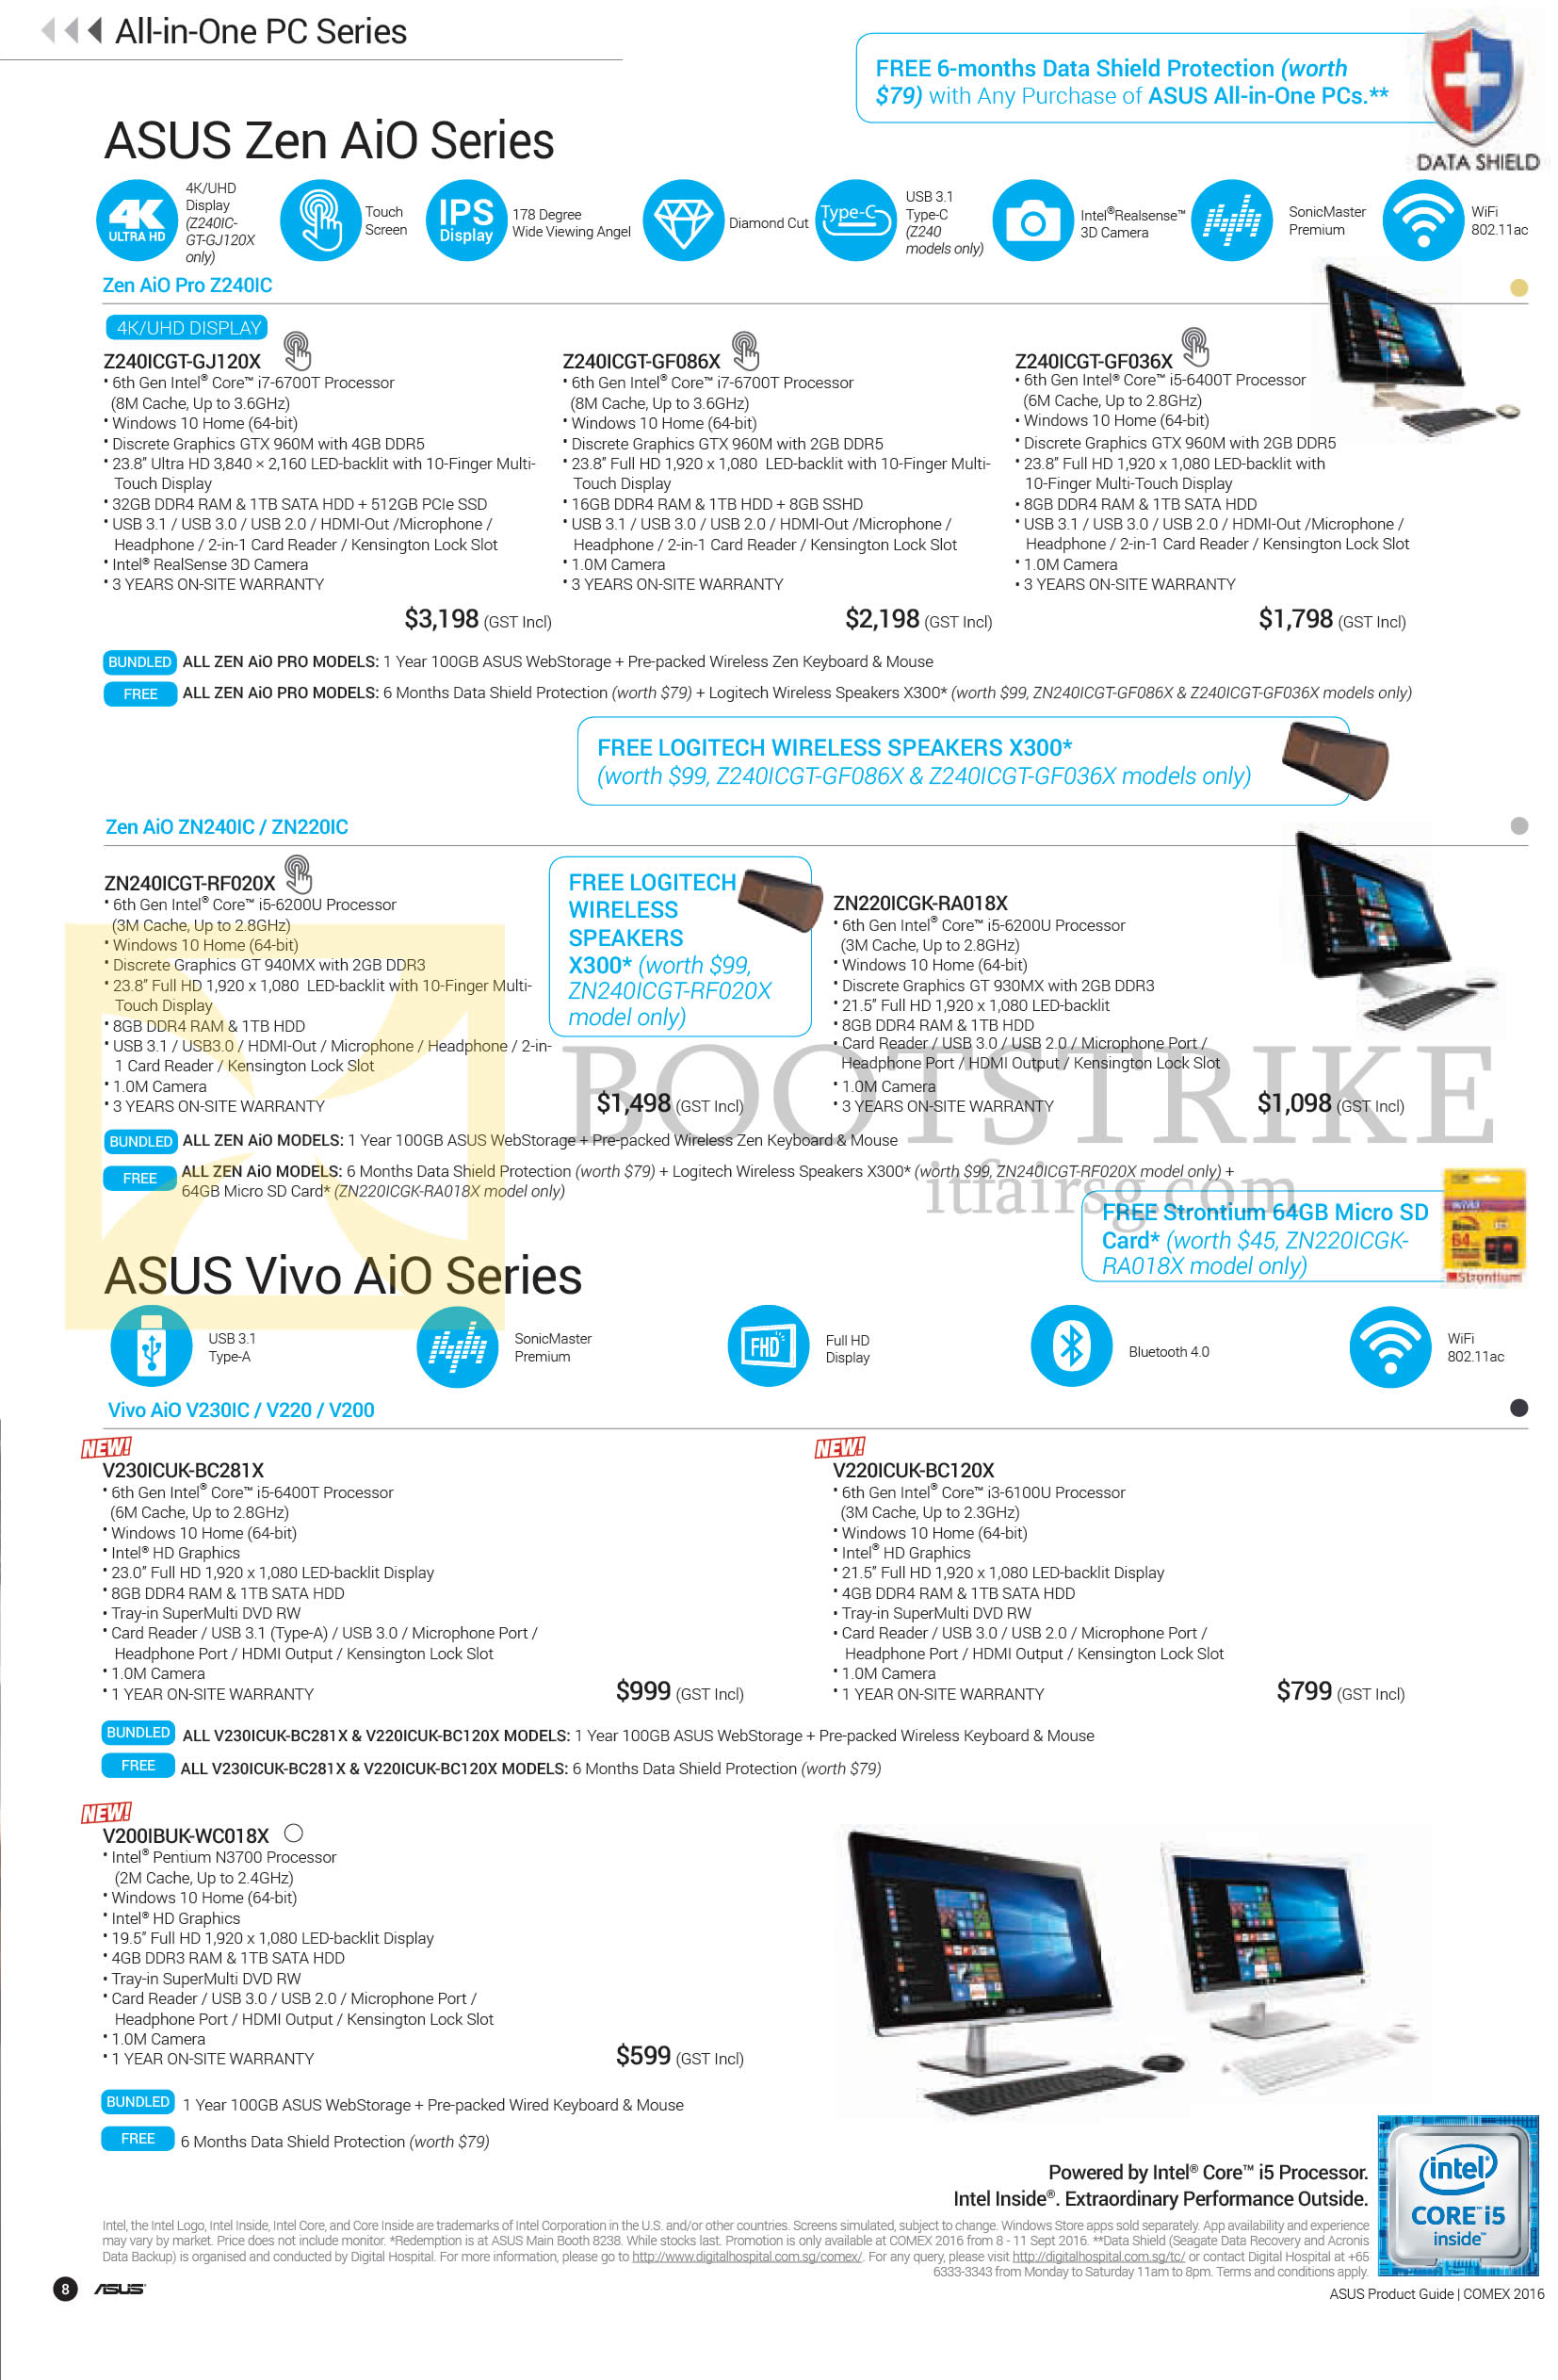 COMEX 2016 price list image brochure of ASUS AIO Desktop PCs Zen AIO Pro Z240IC, ZN240IC, ZN220IC, Vivo AIO V230IC, V220, V200 Series